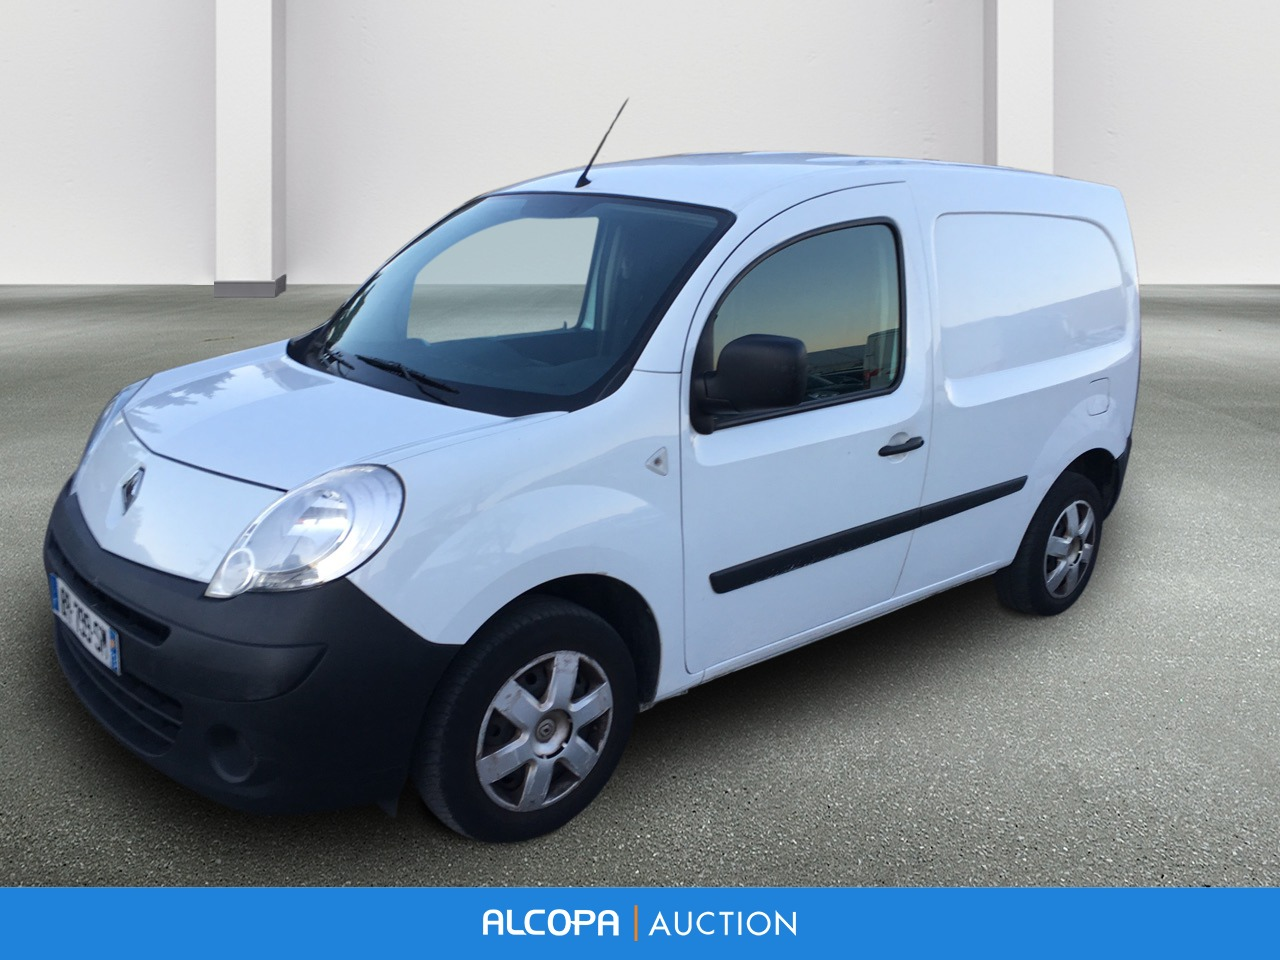 renault kangoo express kangoo express l1 1 5 dci 85 eco2 extra alcopa auction. Black Bedroom Furniture Sets. Home Design Ideas